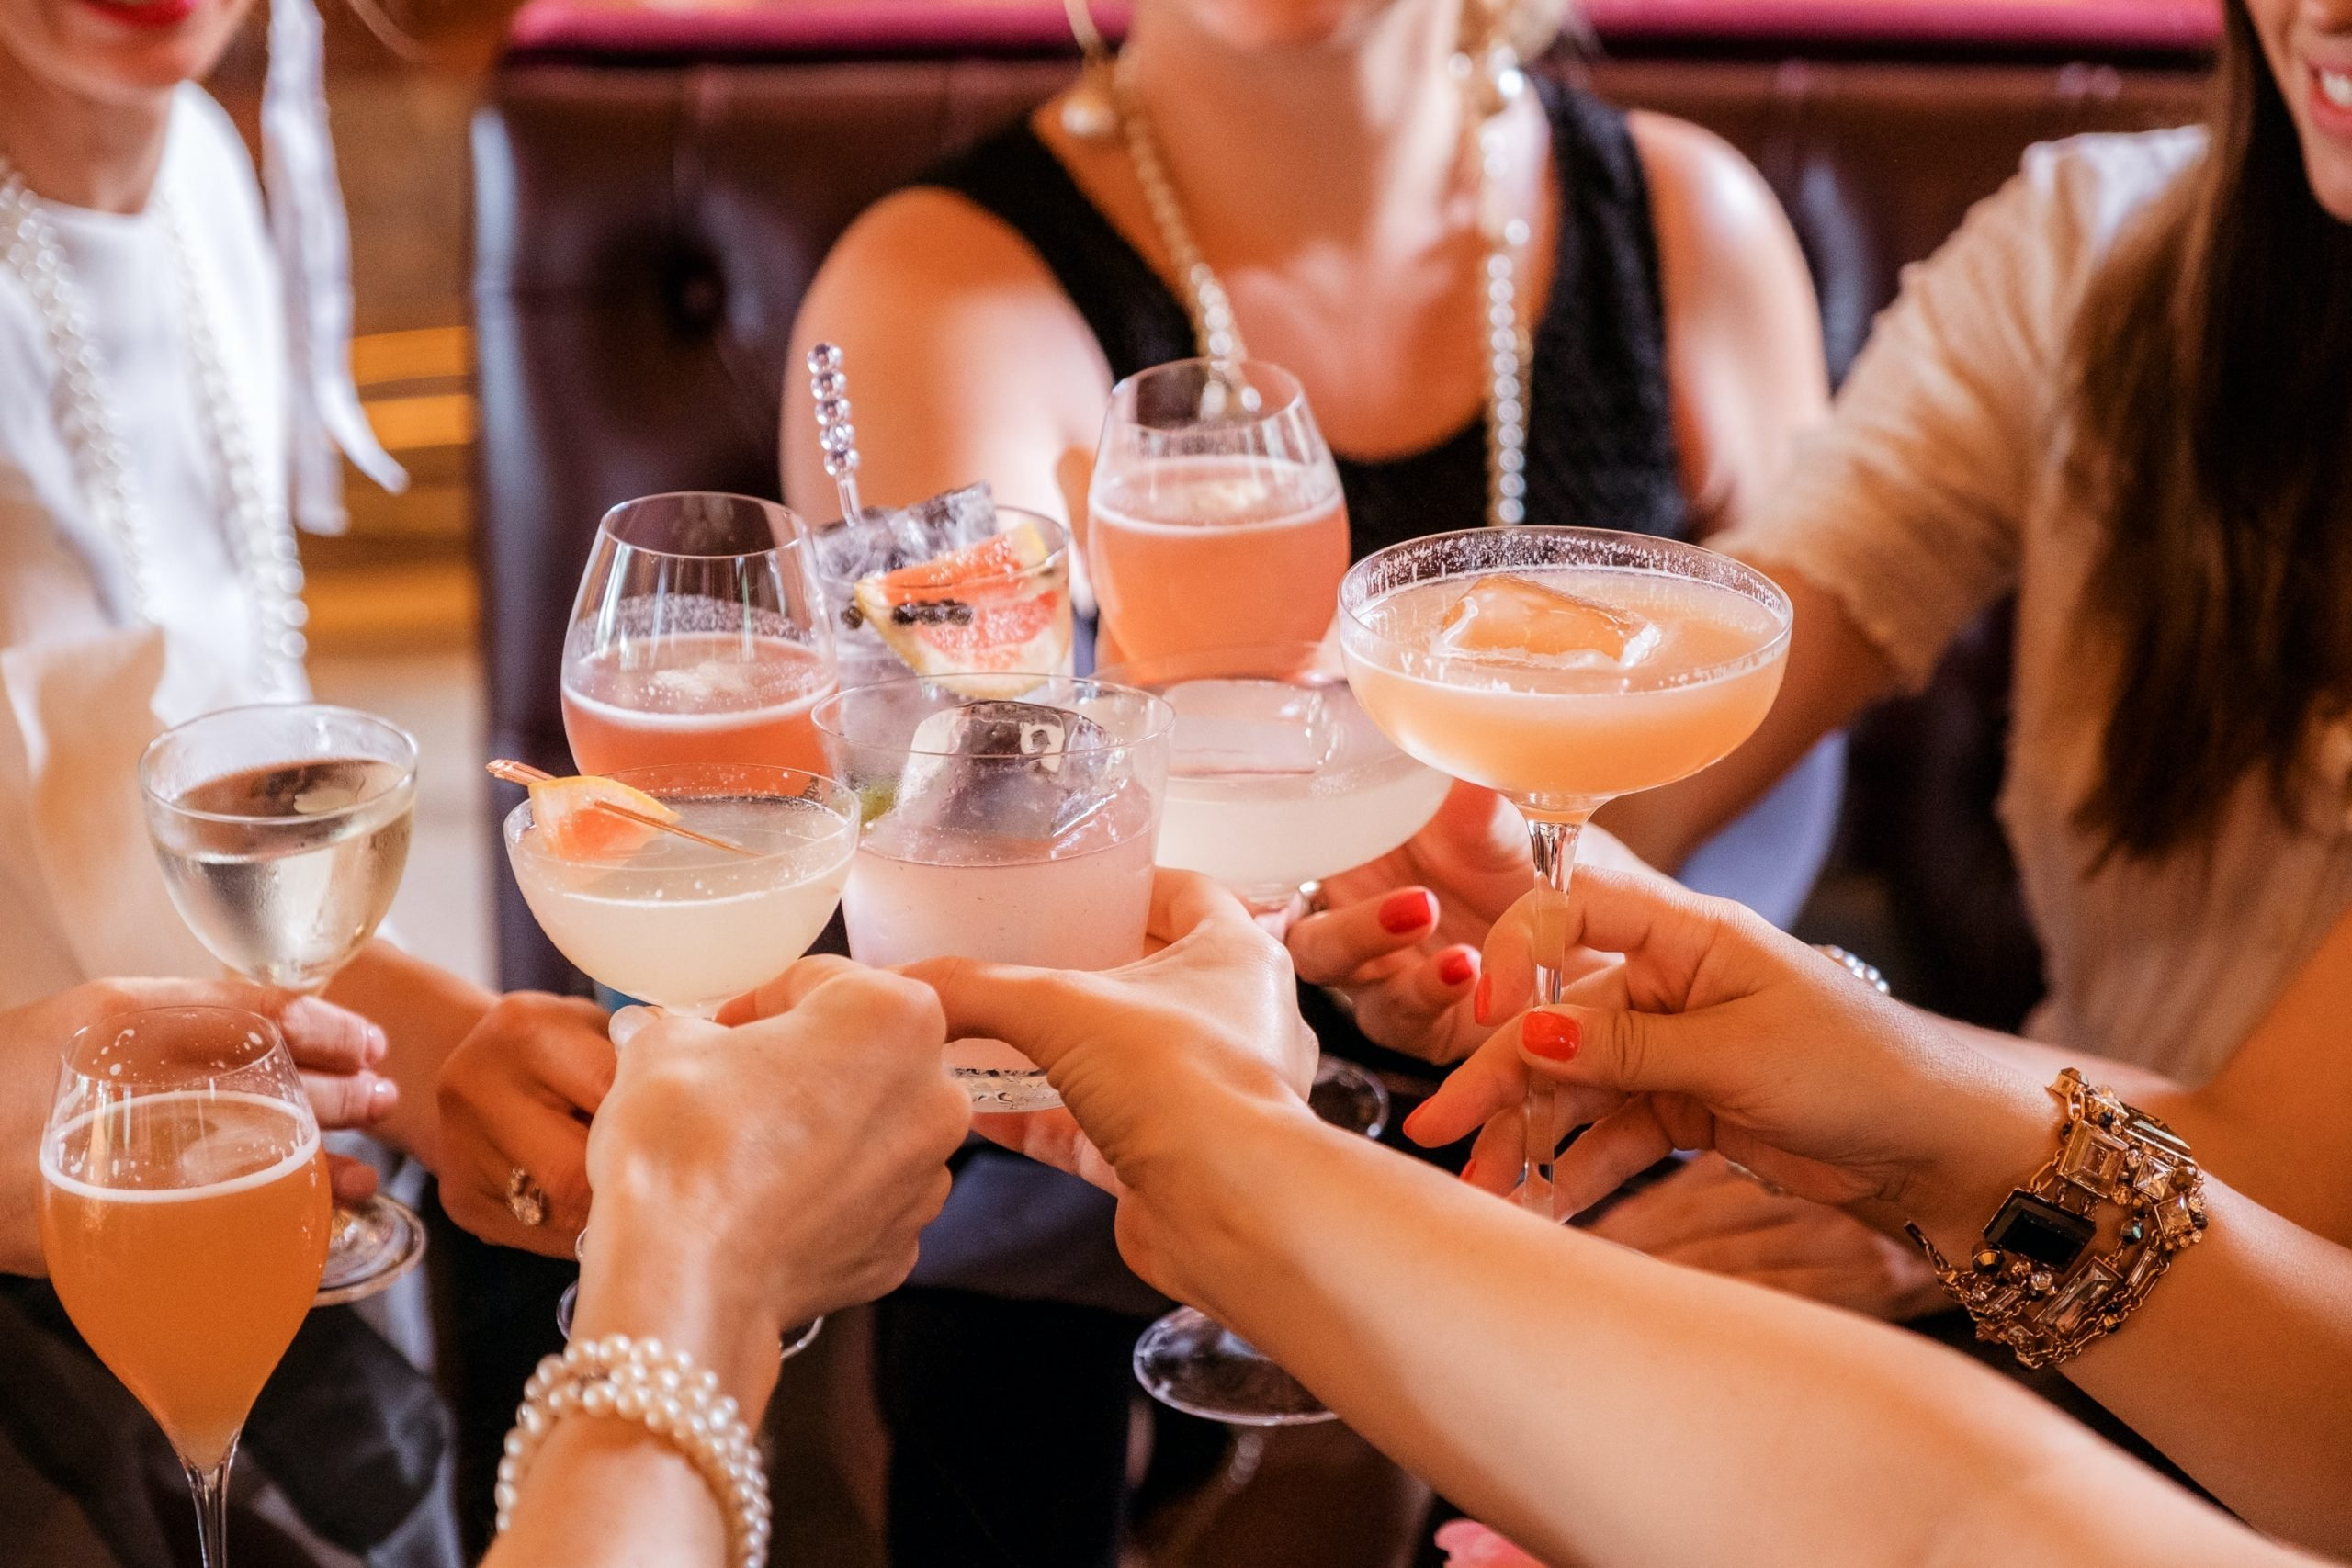 Lots of people are standing in a circle all holding different types of glasses and cocktail drinks. You can only see their arms and they look dressed up as if they are at a party